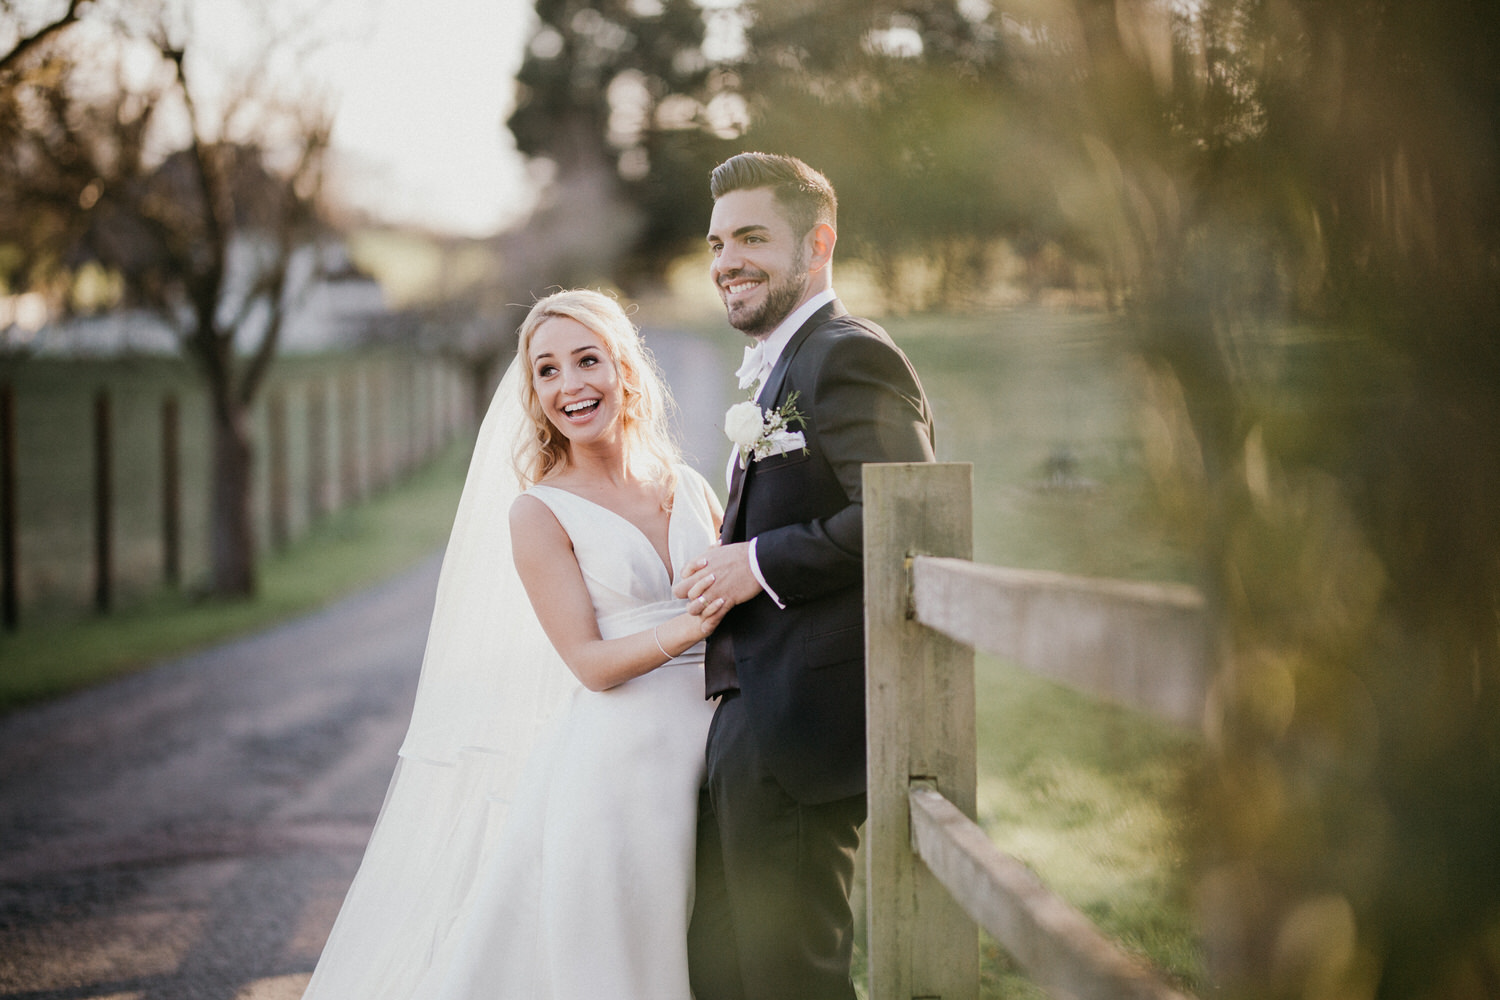 Bride and groom laughing holding hands outside during sunset